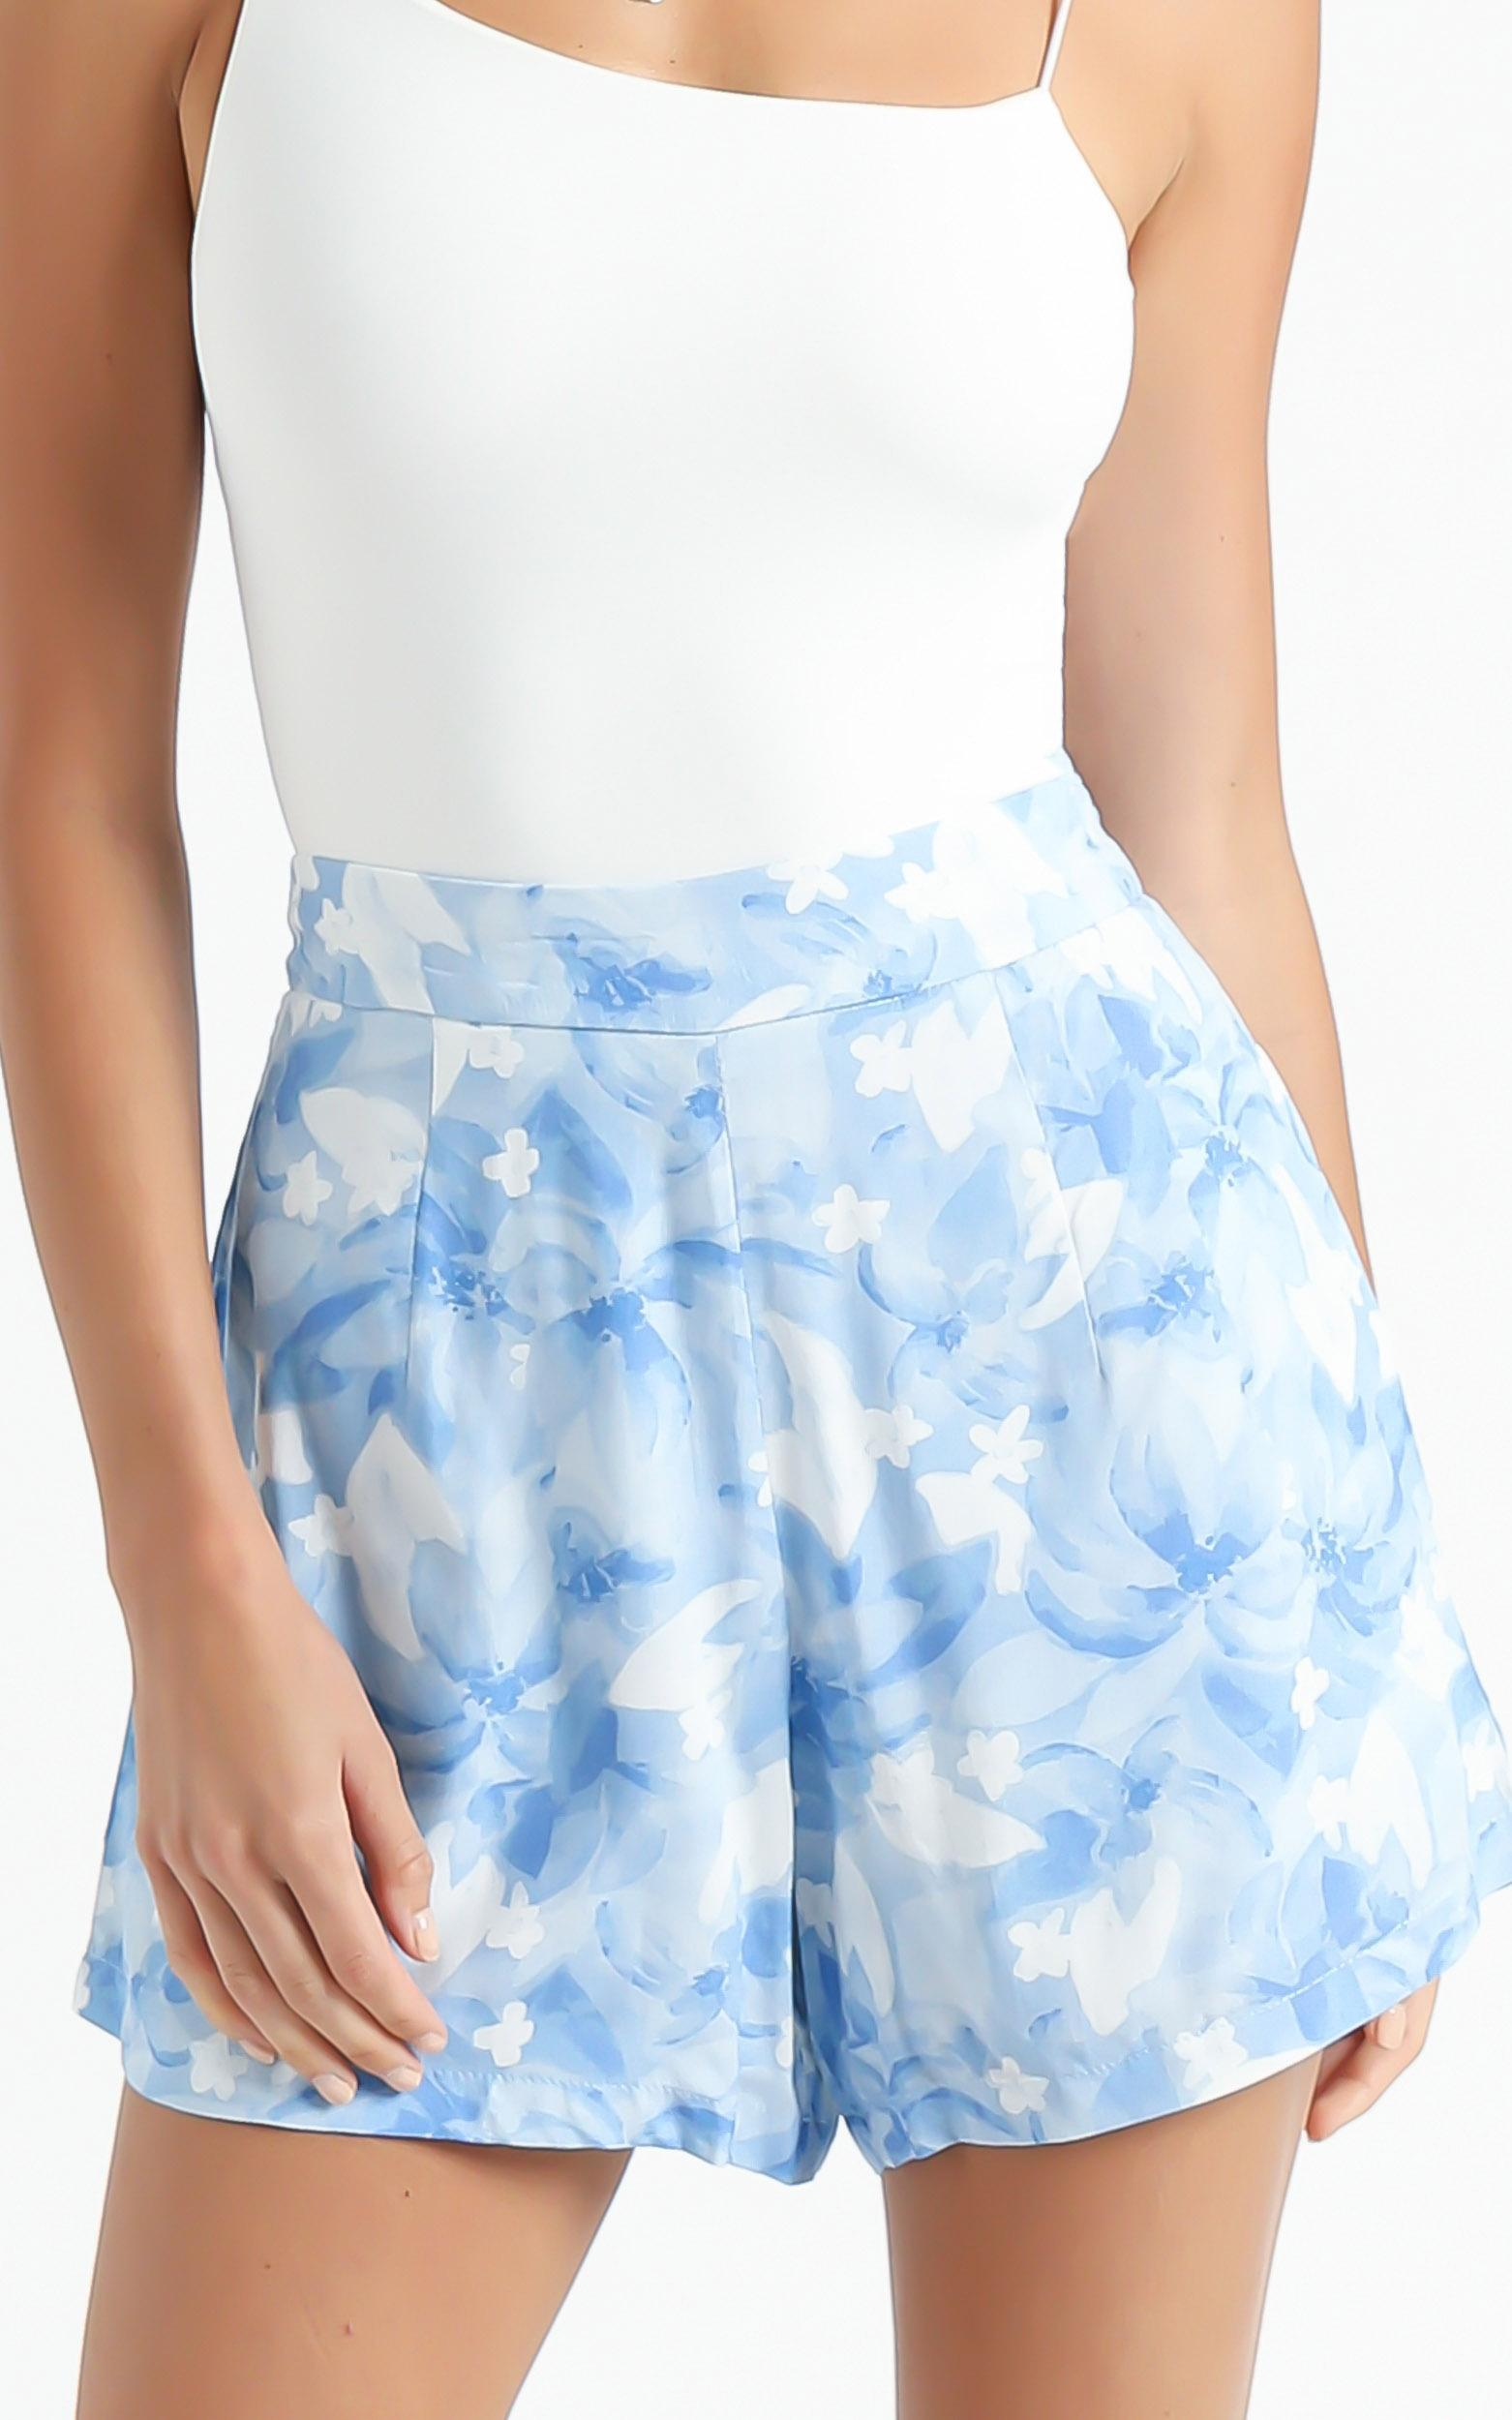 Aloe Shorts in Cloudy Floral - 6 (XS), Blue, hi-res image number null